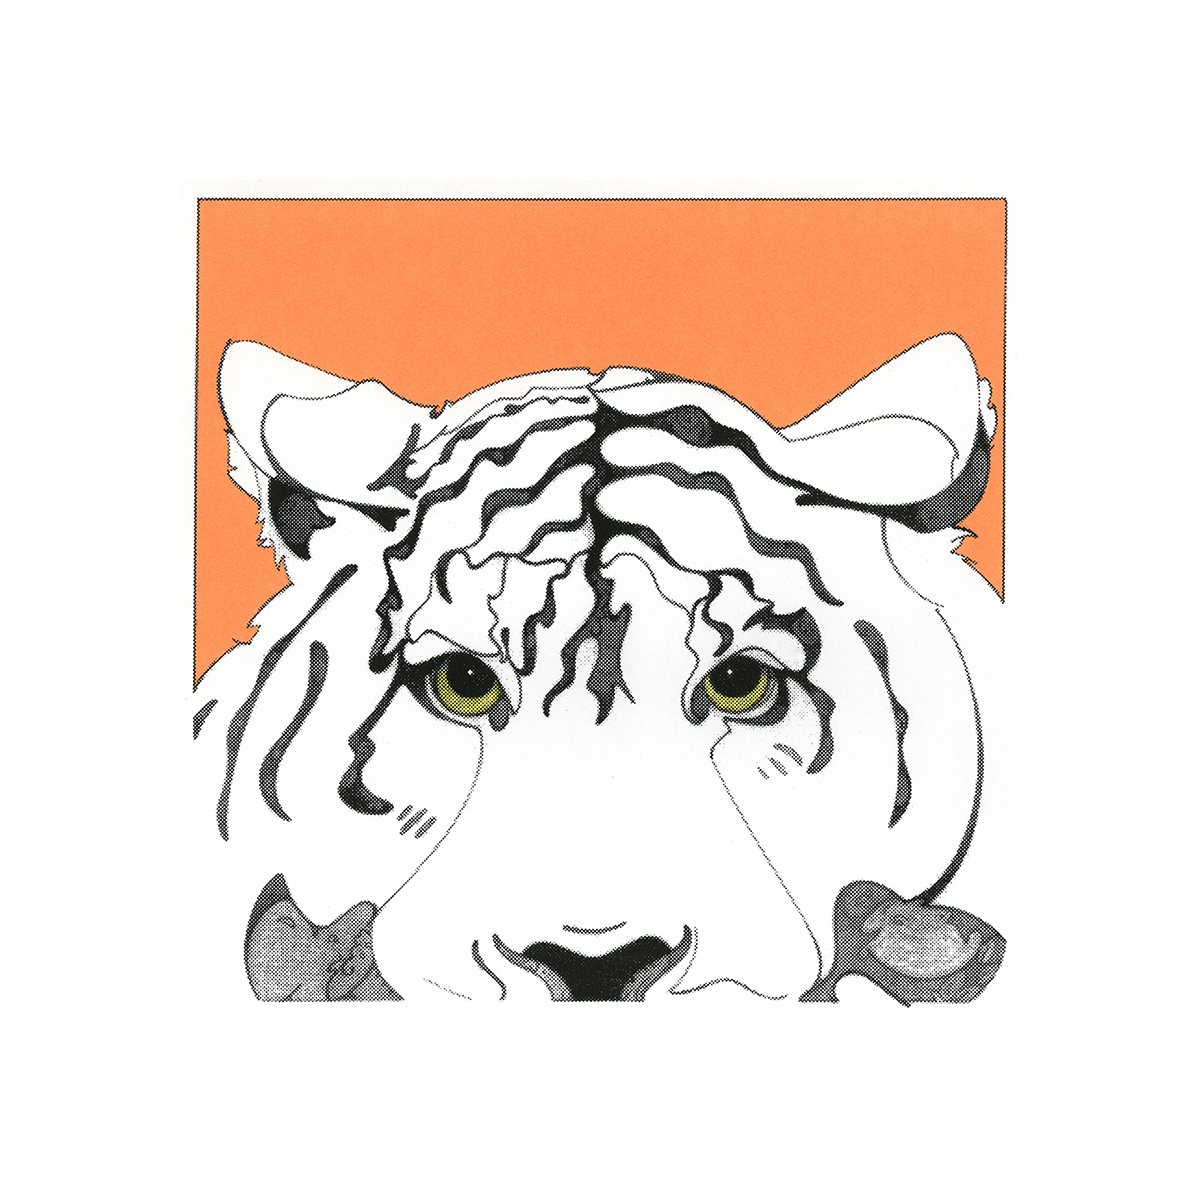 Evening Star (tiger), serigraphic print, copyrighted by Kathleen Zimmerman